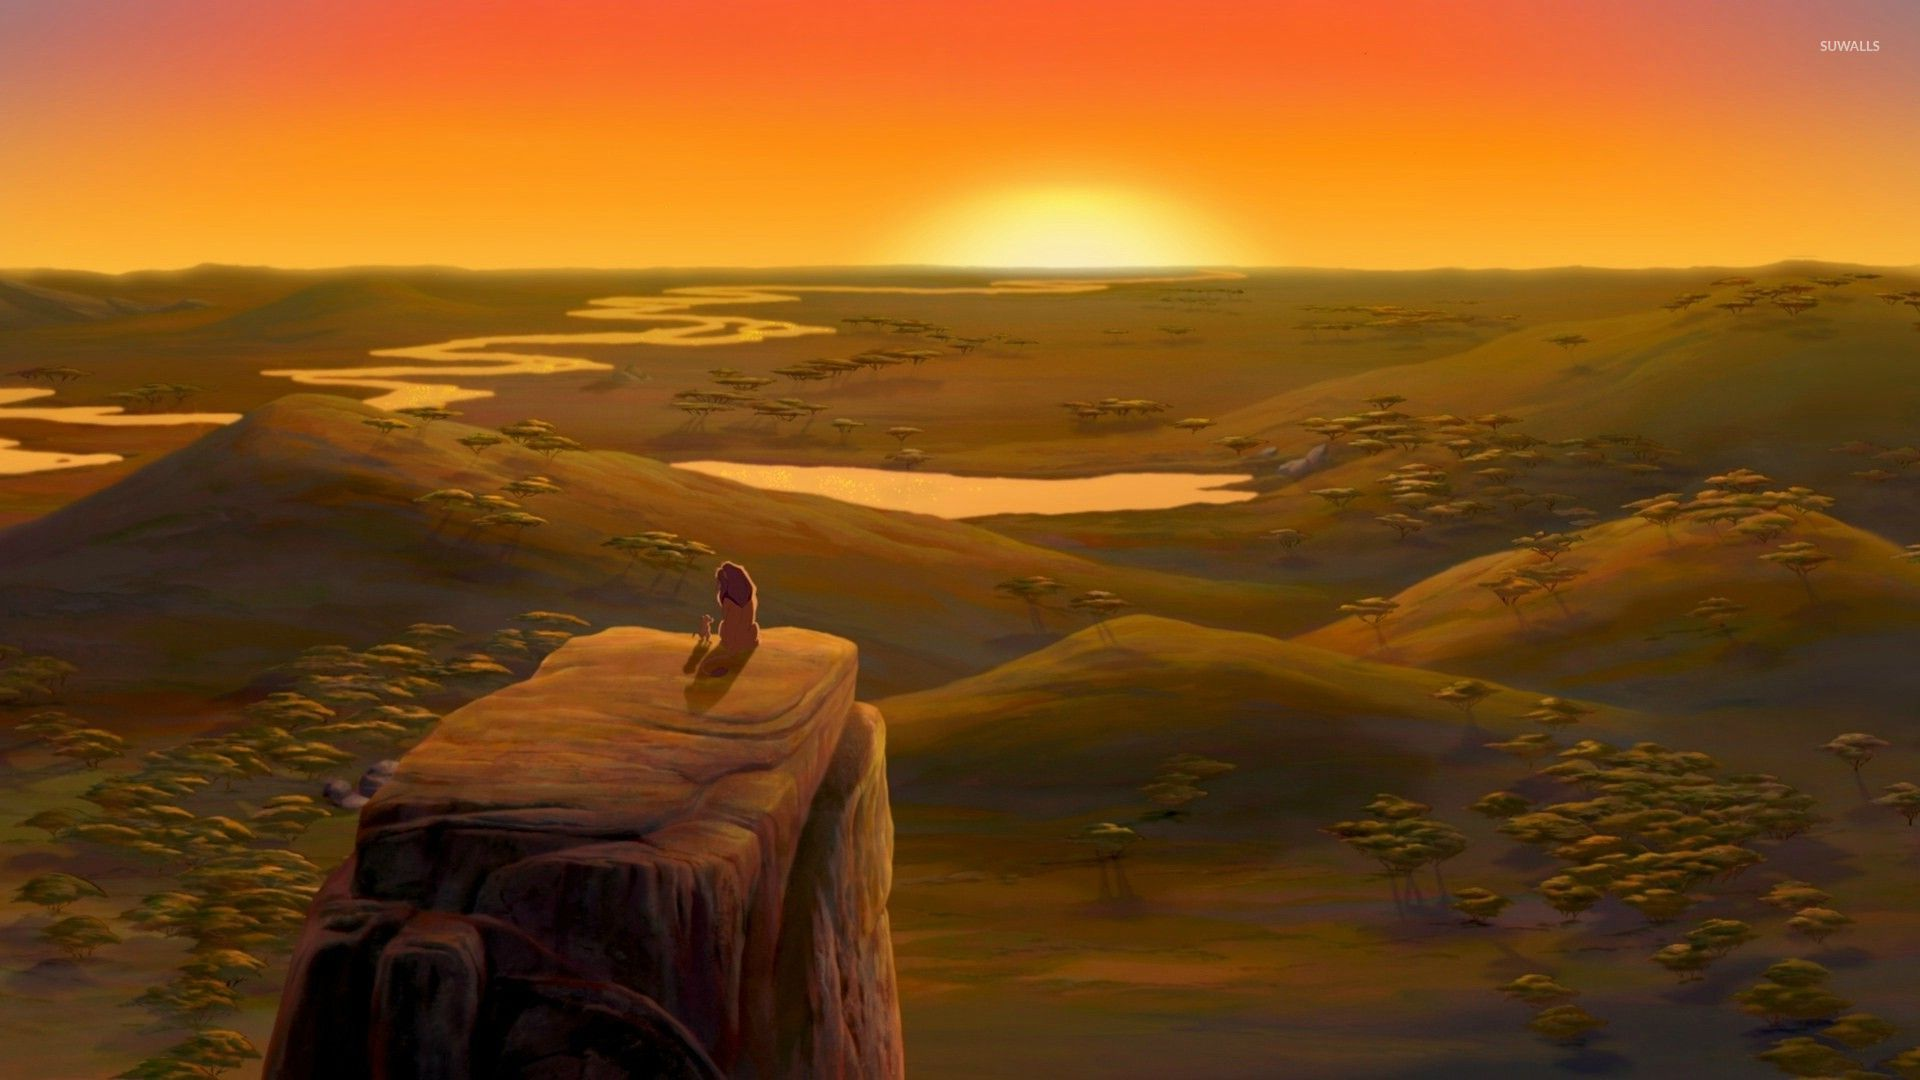 the lion king wallpaper - cartoon wallpapers - #28984